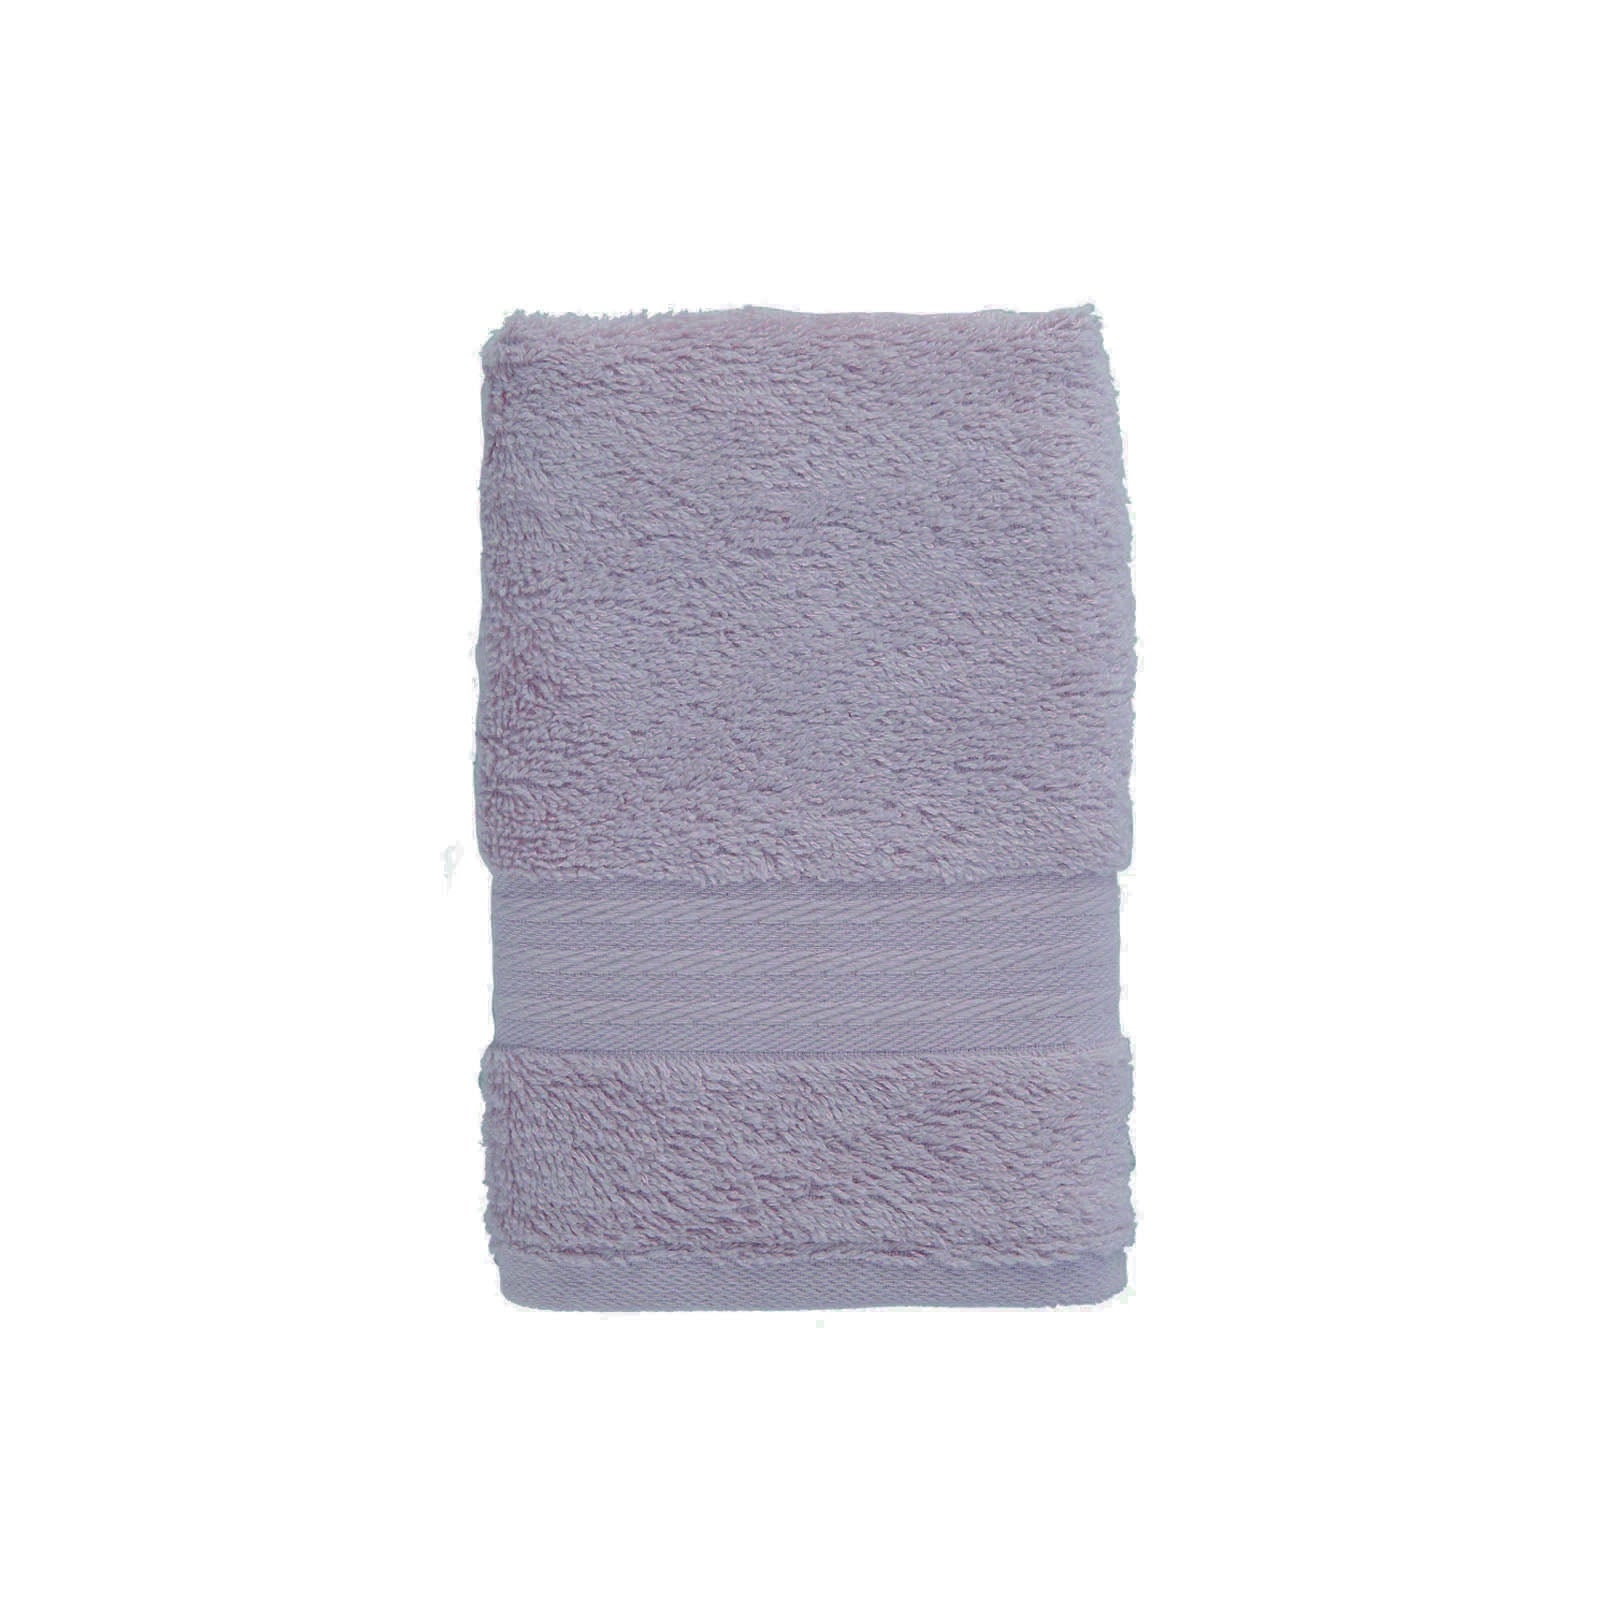 30X50 PURE SOFT  towel  200.05.01.0231 - ebarza